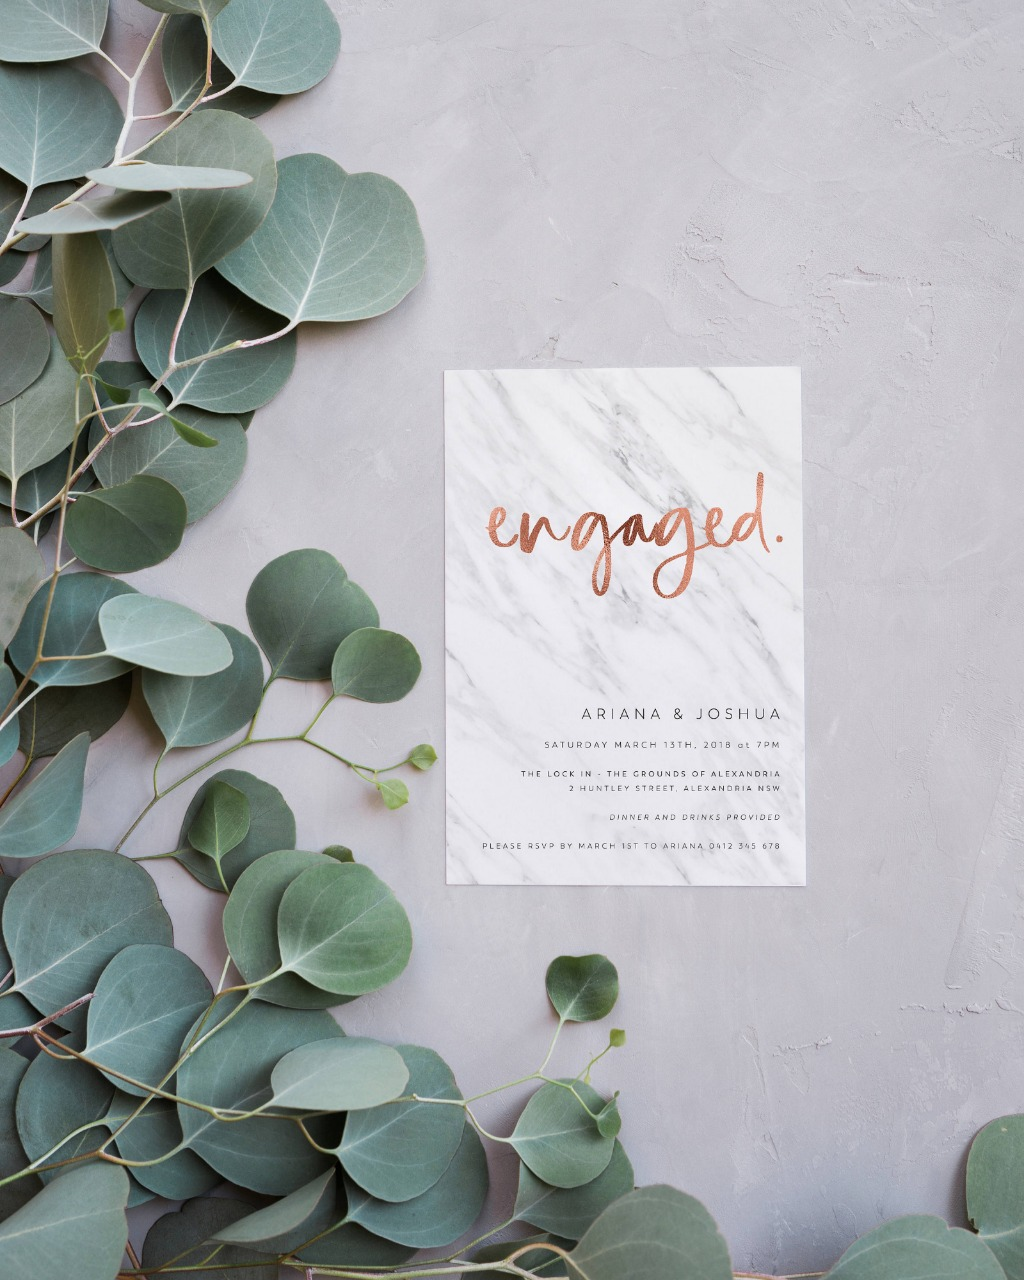 Marble & Faux Foil | 15% off printed engagement invitations this month on Paper Minx Designs